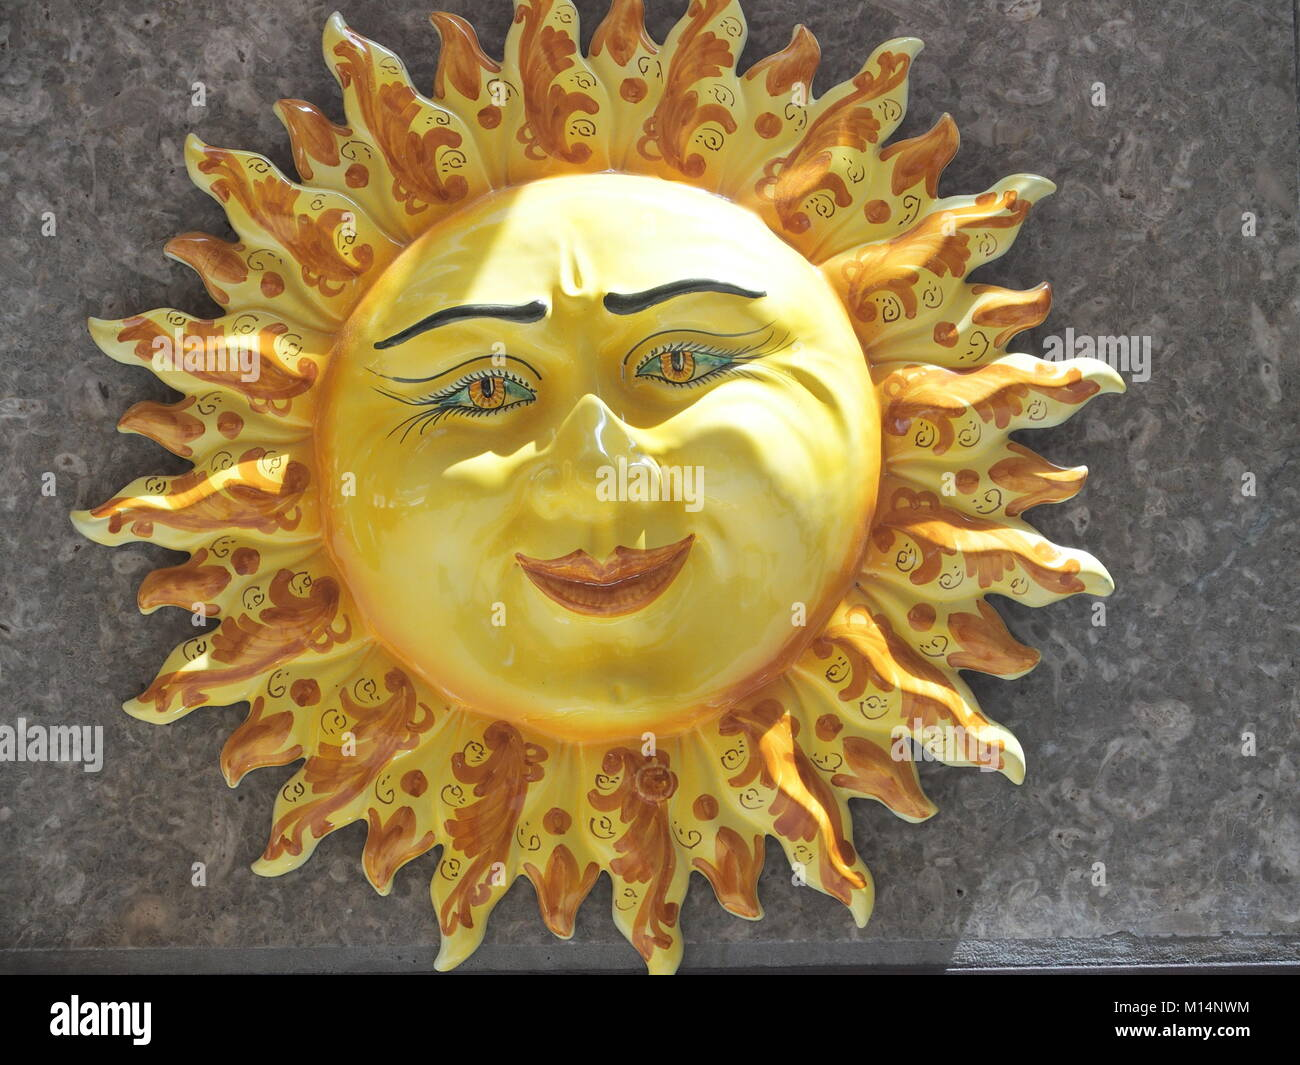 Ceramic Sun Stock Photos & Ceramic Sun Stock Images - Alamy